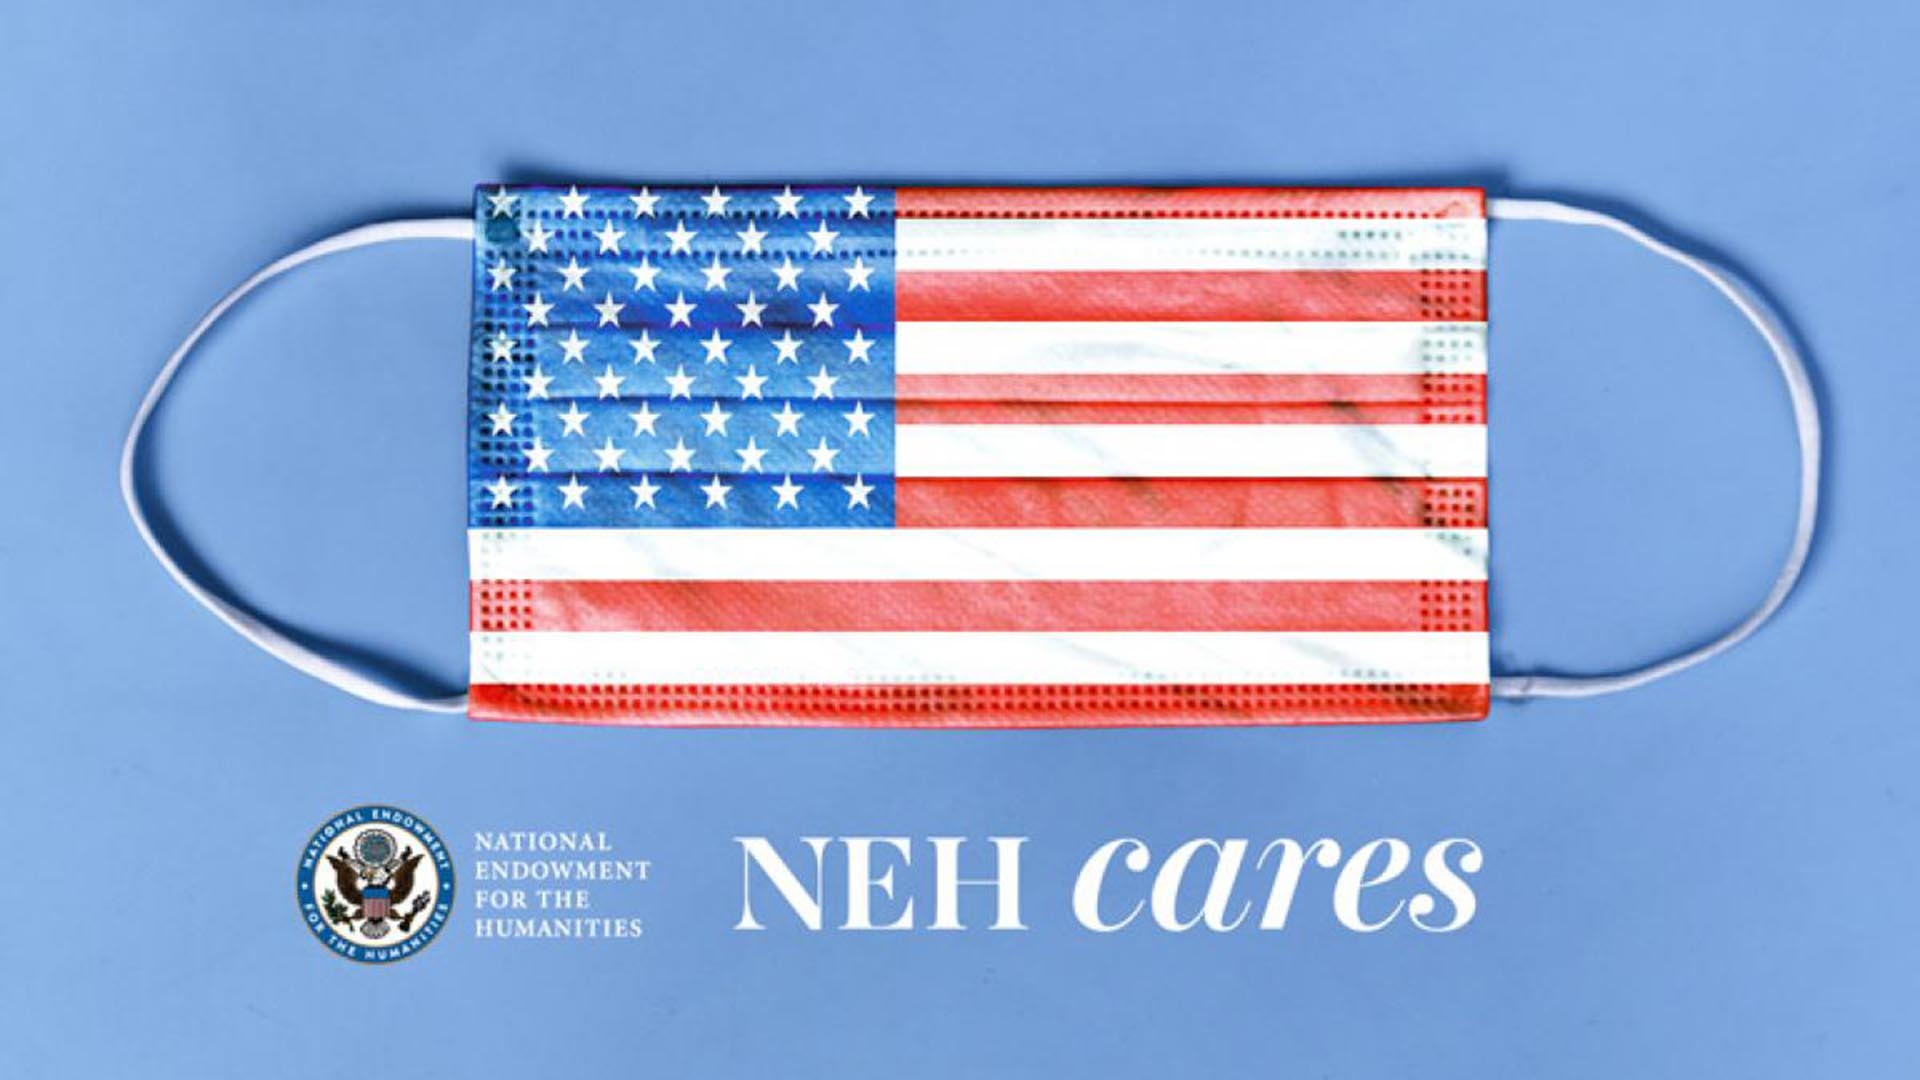 image of NEH Cares logo and american flag mask